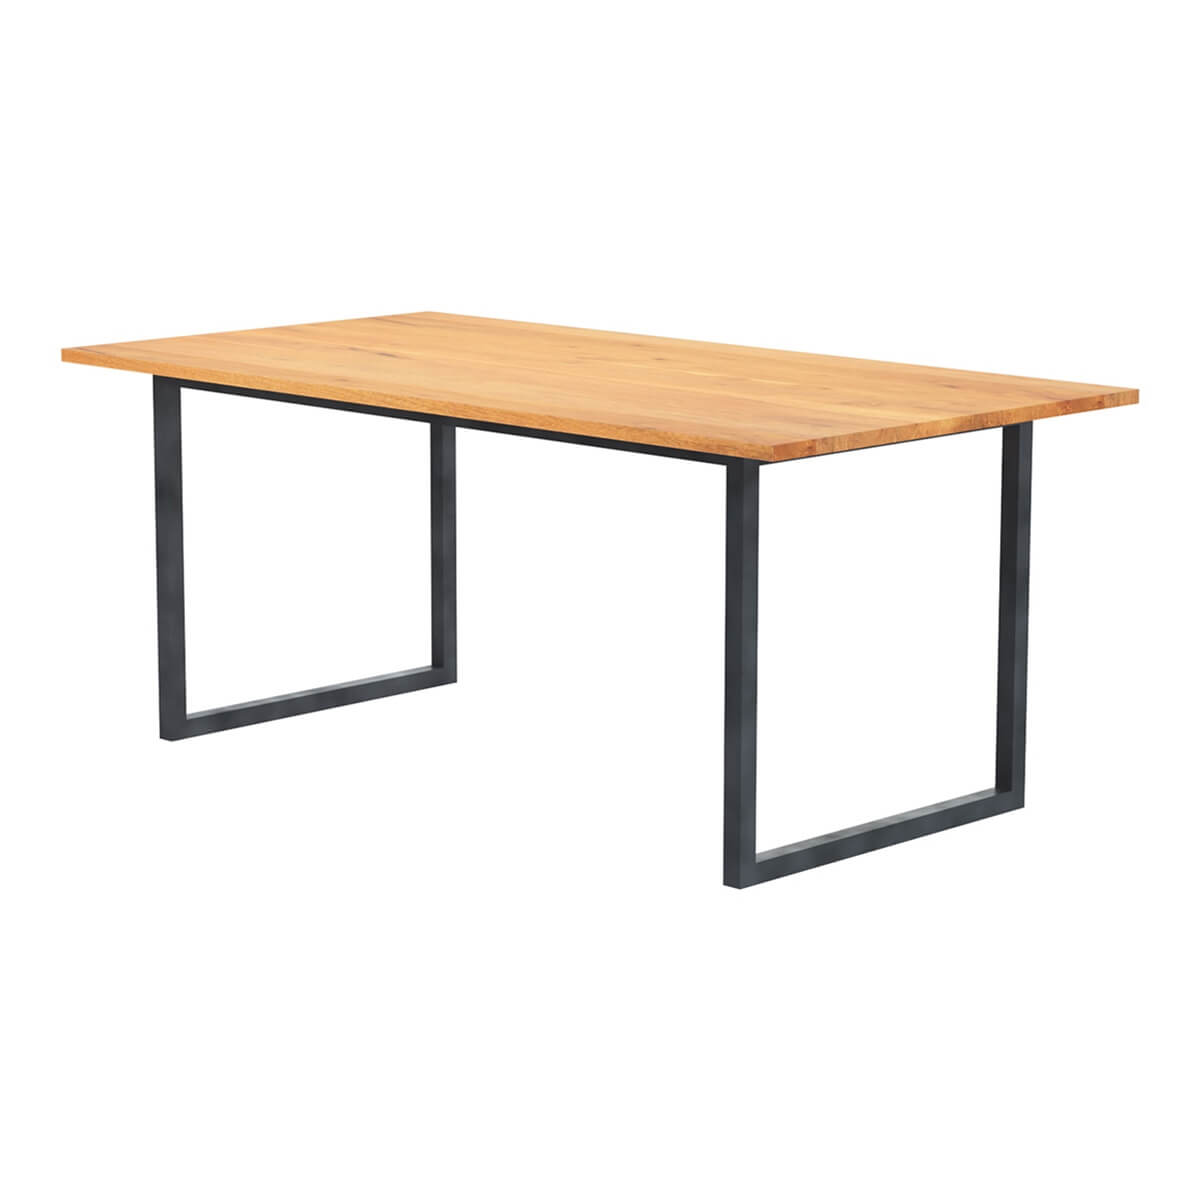 Karval Rustic Solid Wood Industrial Dining Table